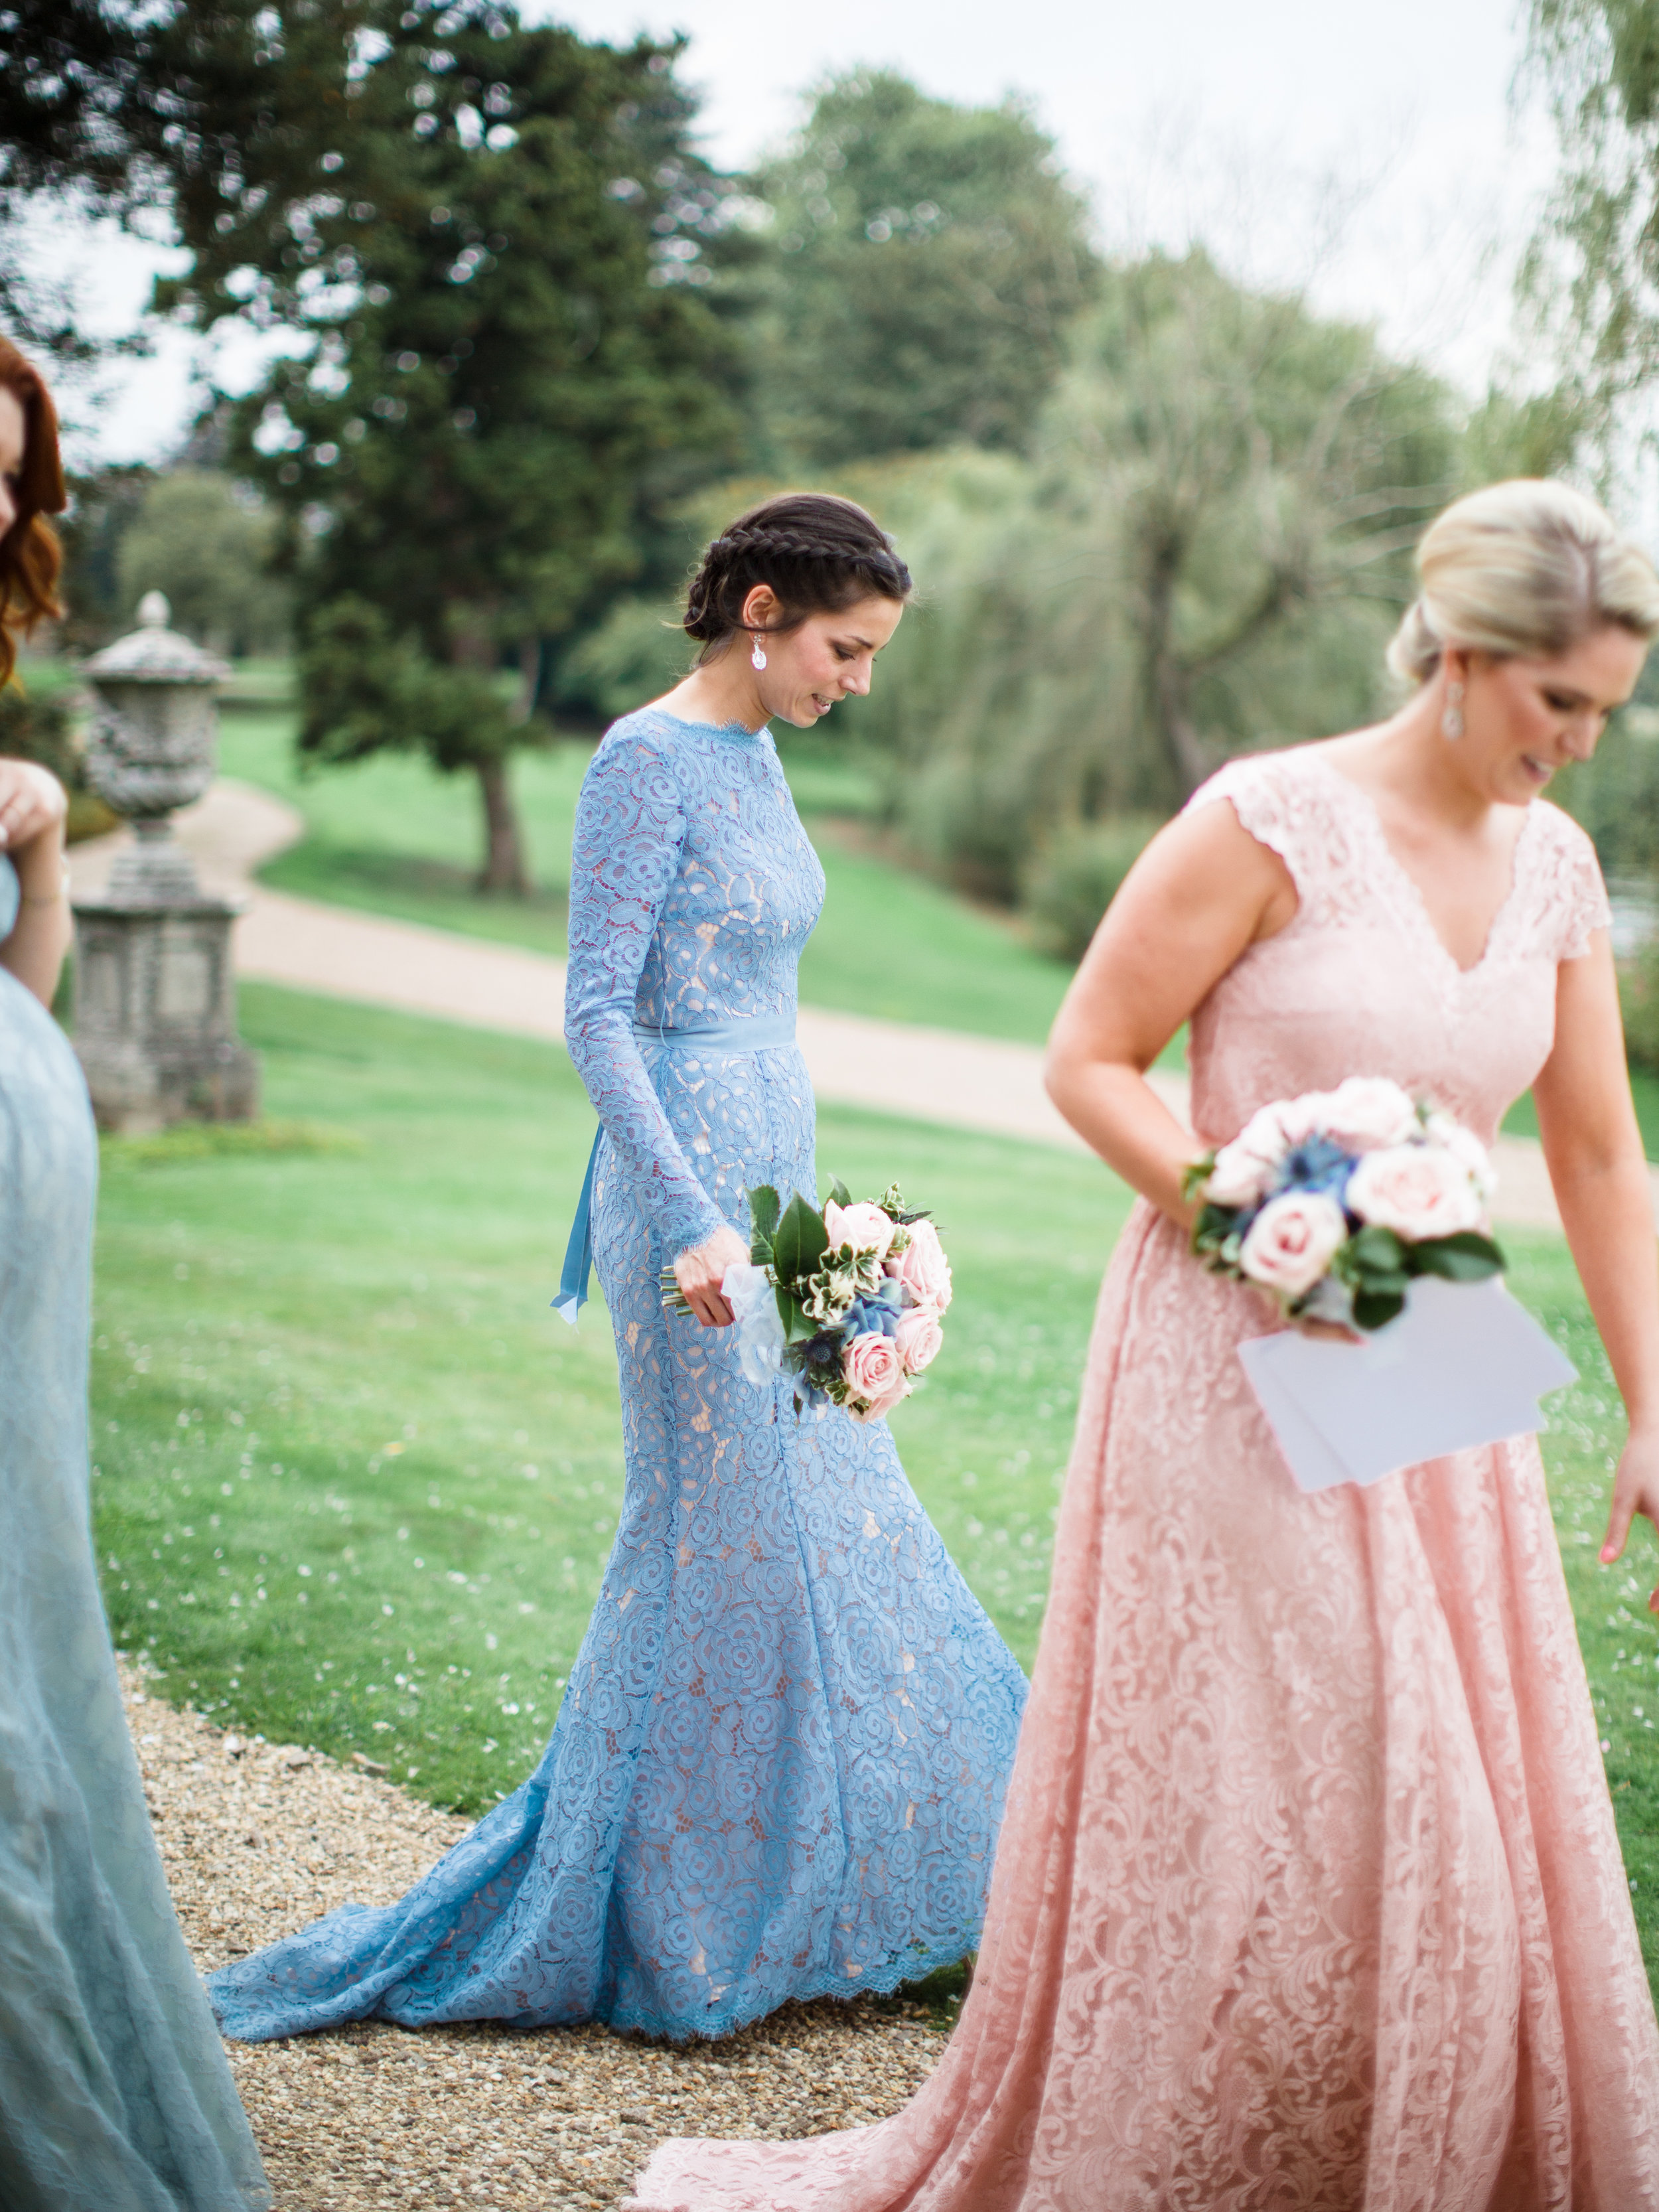 Alara & Charlotte gown at Co-Founder Louie's wedding - Photo:  Amy O'Boyle